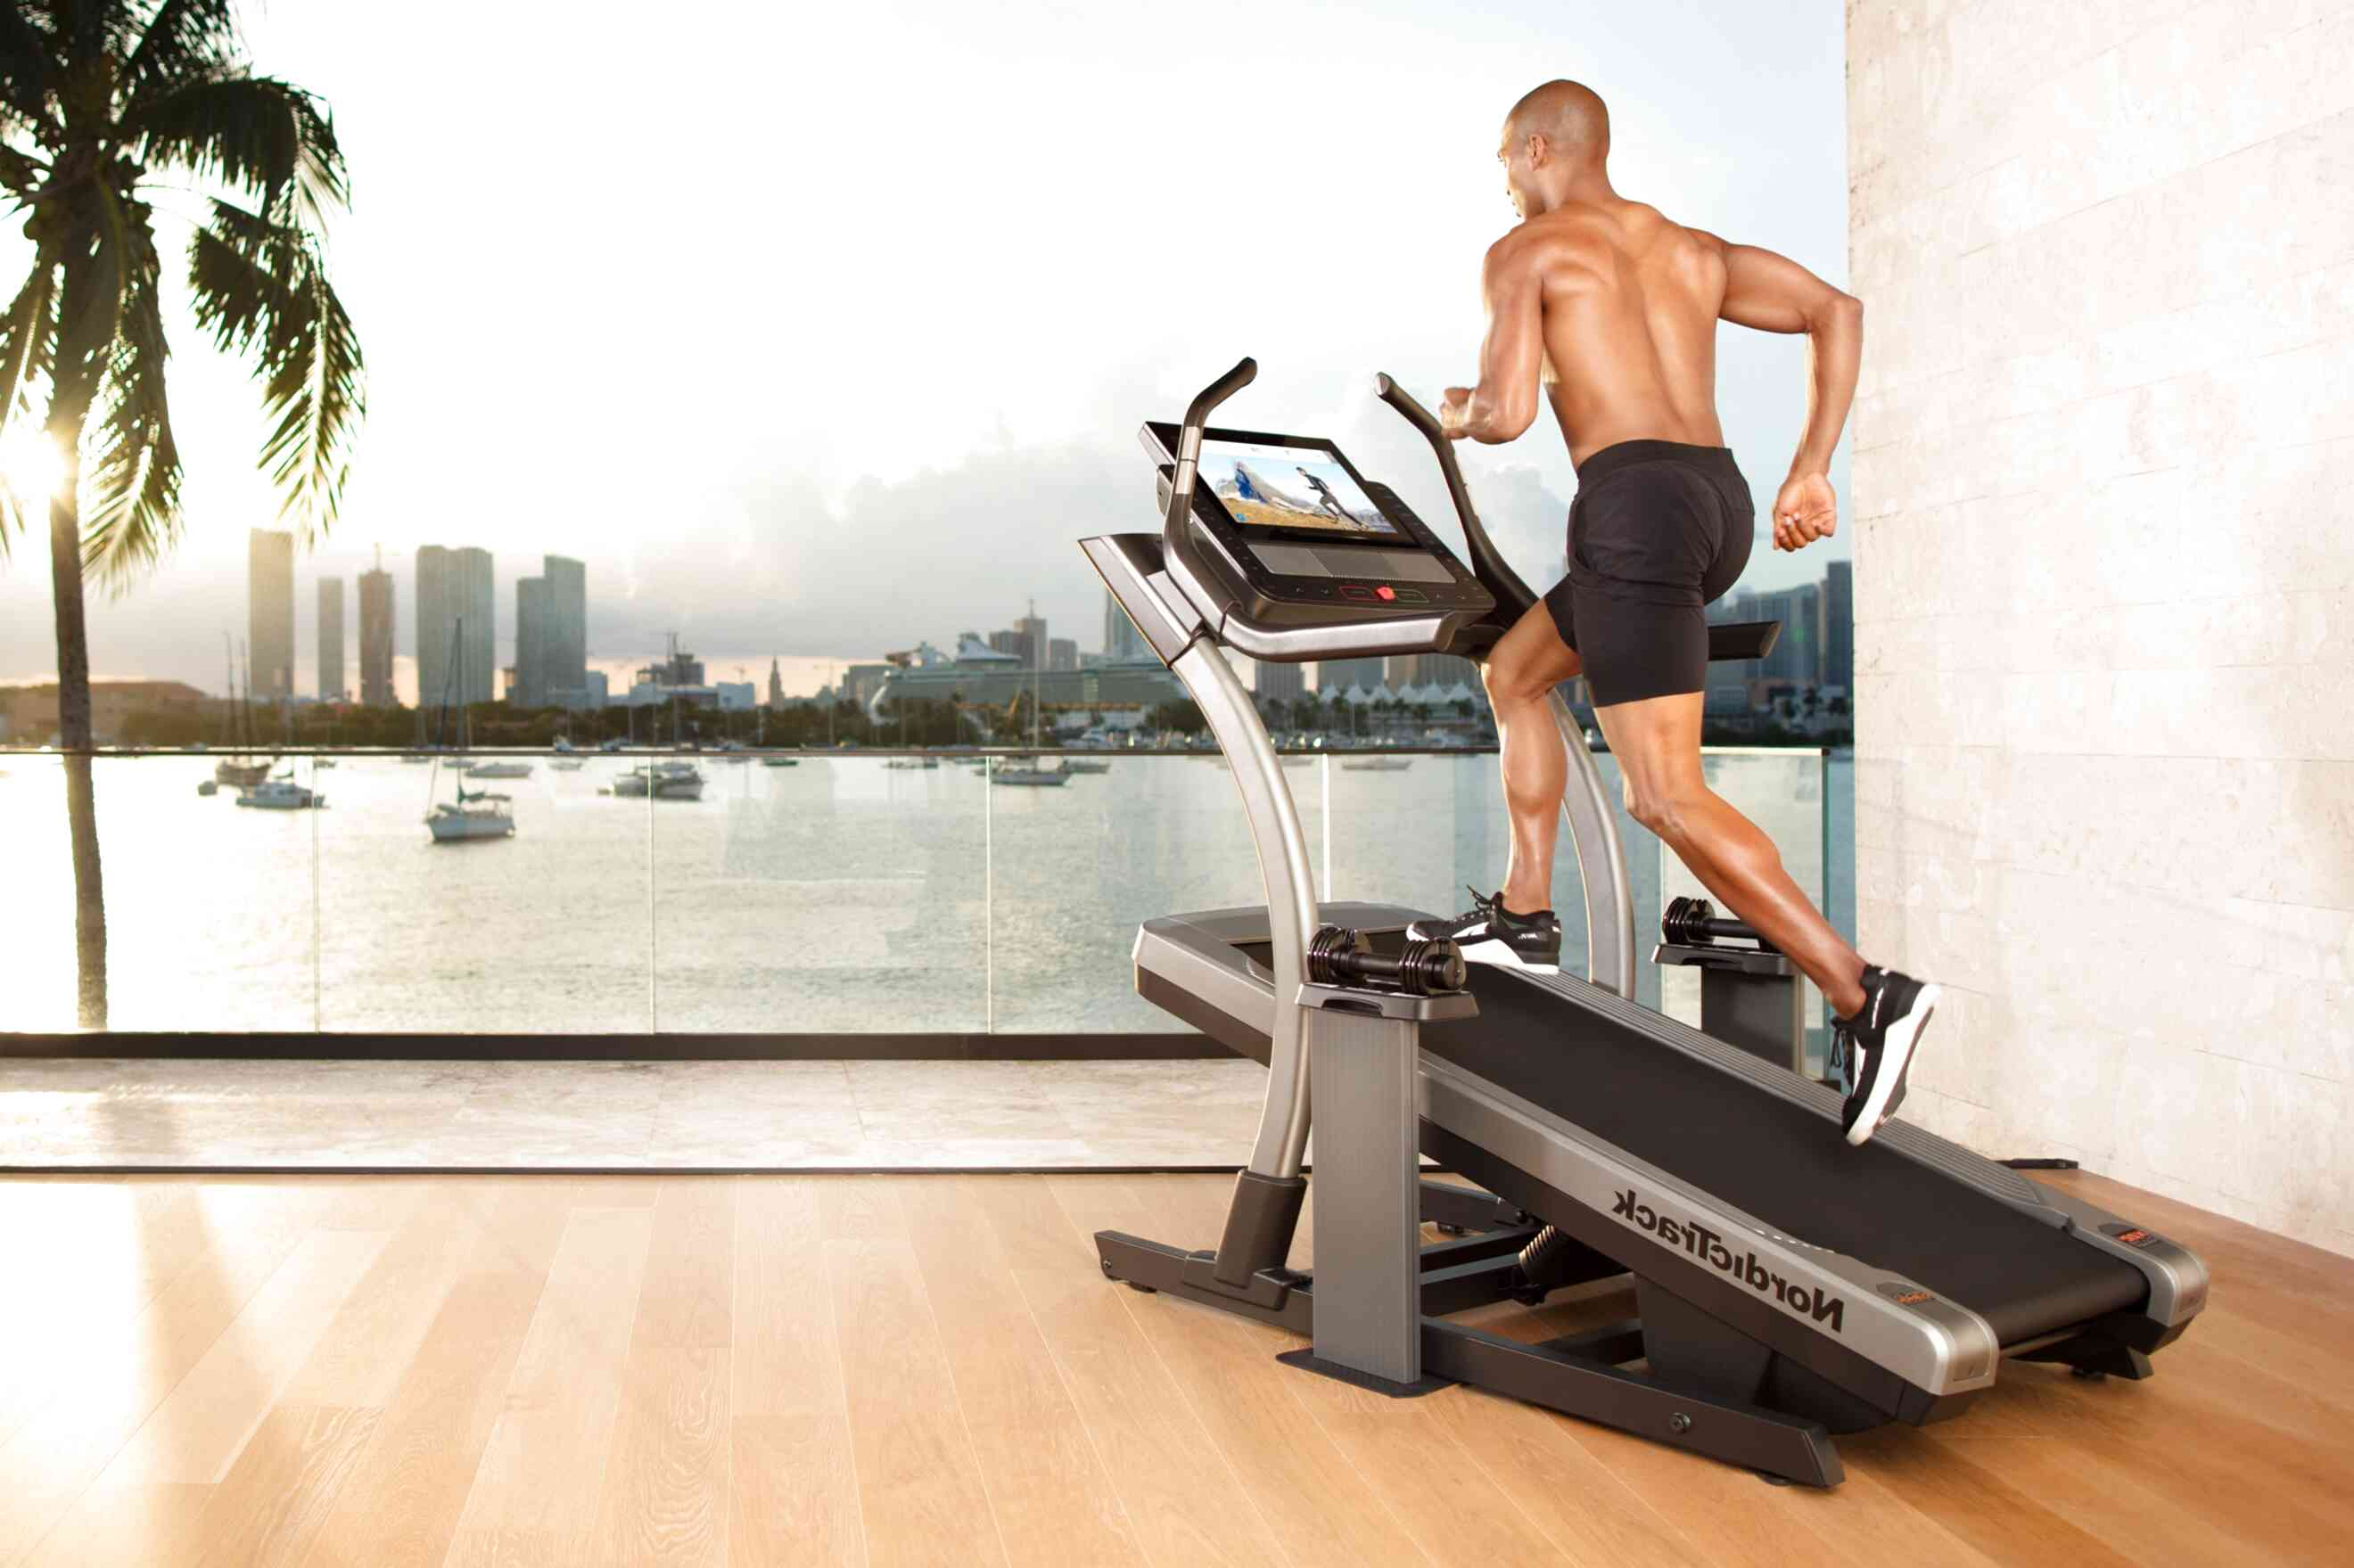 Nordic Track Treadmill X22i For Sale Only 4 Left At 75